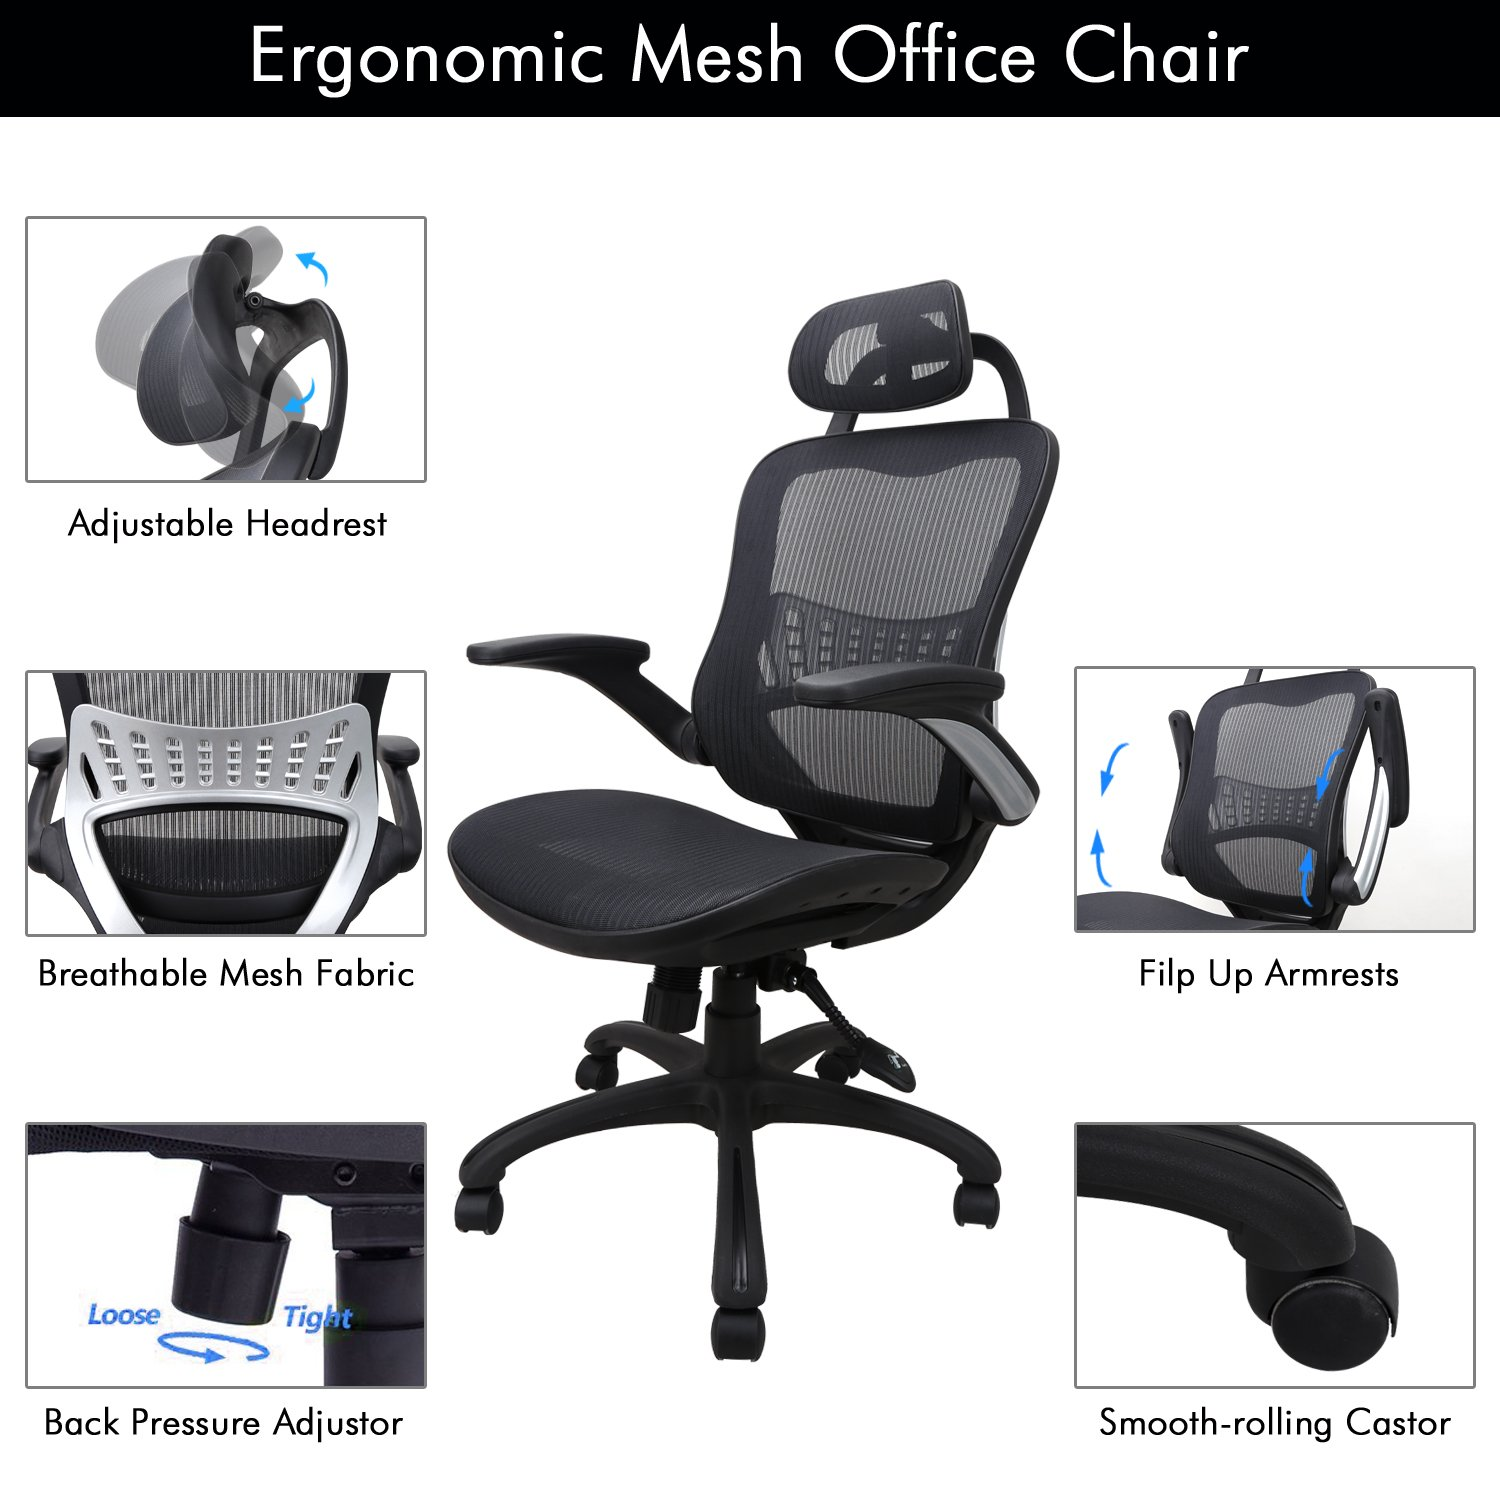 Ergonomic Office Chair: Passed BIFMA/SGS Weight Support Over 300Ibs,Breathable Mesh Cushion &High Back - Executive Chairs with Adjustable Head& Backrest,Flip-up Armrests,360-Degree Swivel Chair by Komene (Image #4)